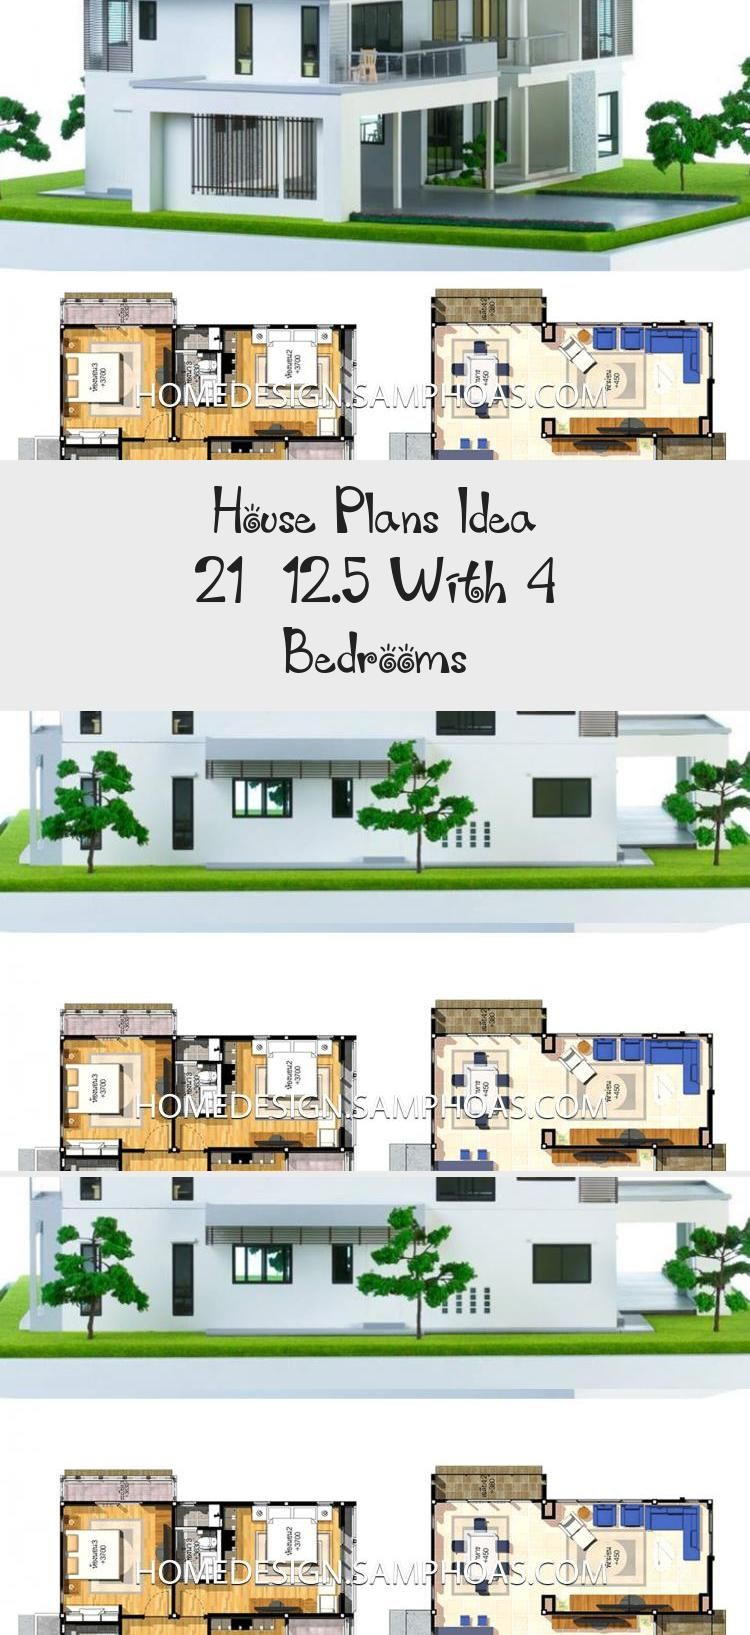 House Plans Idea 21x12 5 With 4 Bedrooms Home Ideassearch Cottagefloorplans Largefloorplans Floorplansdesign In 2020 House Plans Cottage Floor Plans Floor Plans